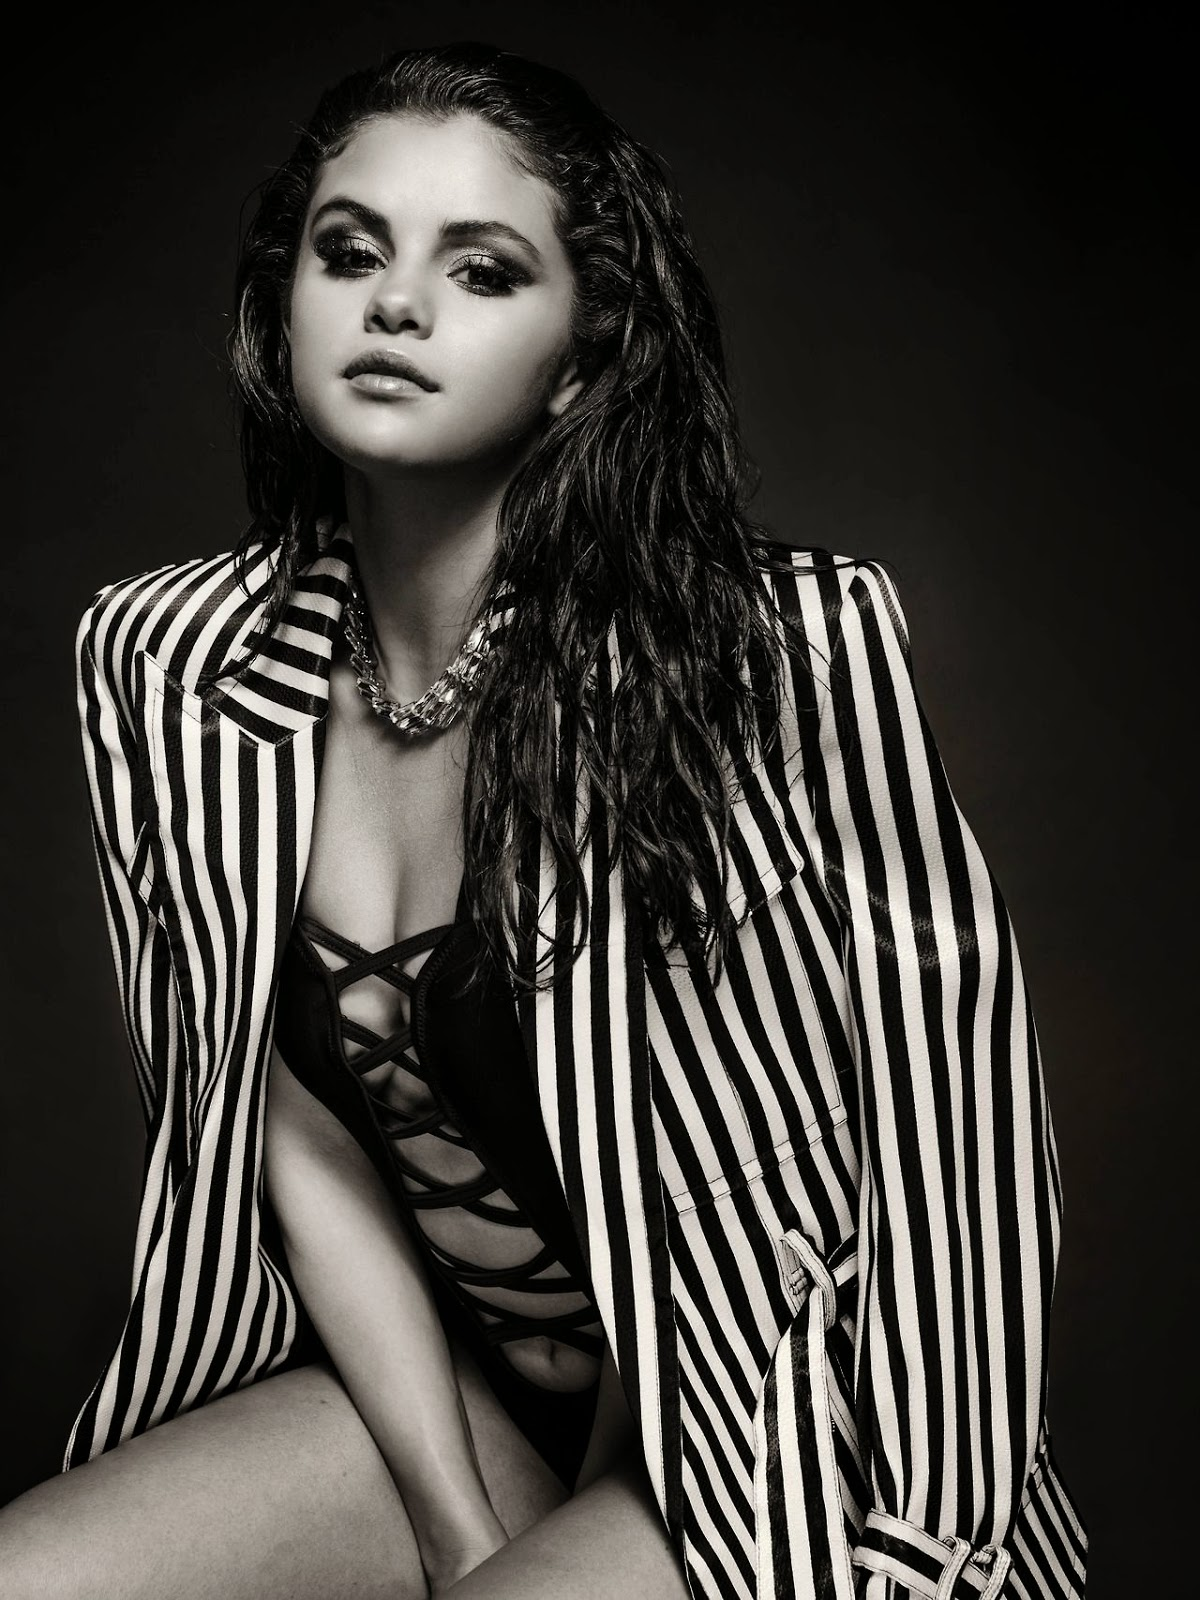 Selena Gomez sizzles in a swimsuit and blazer look for new photoshoot